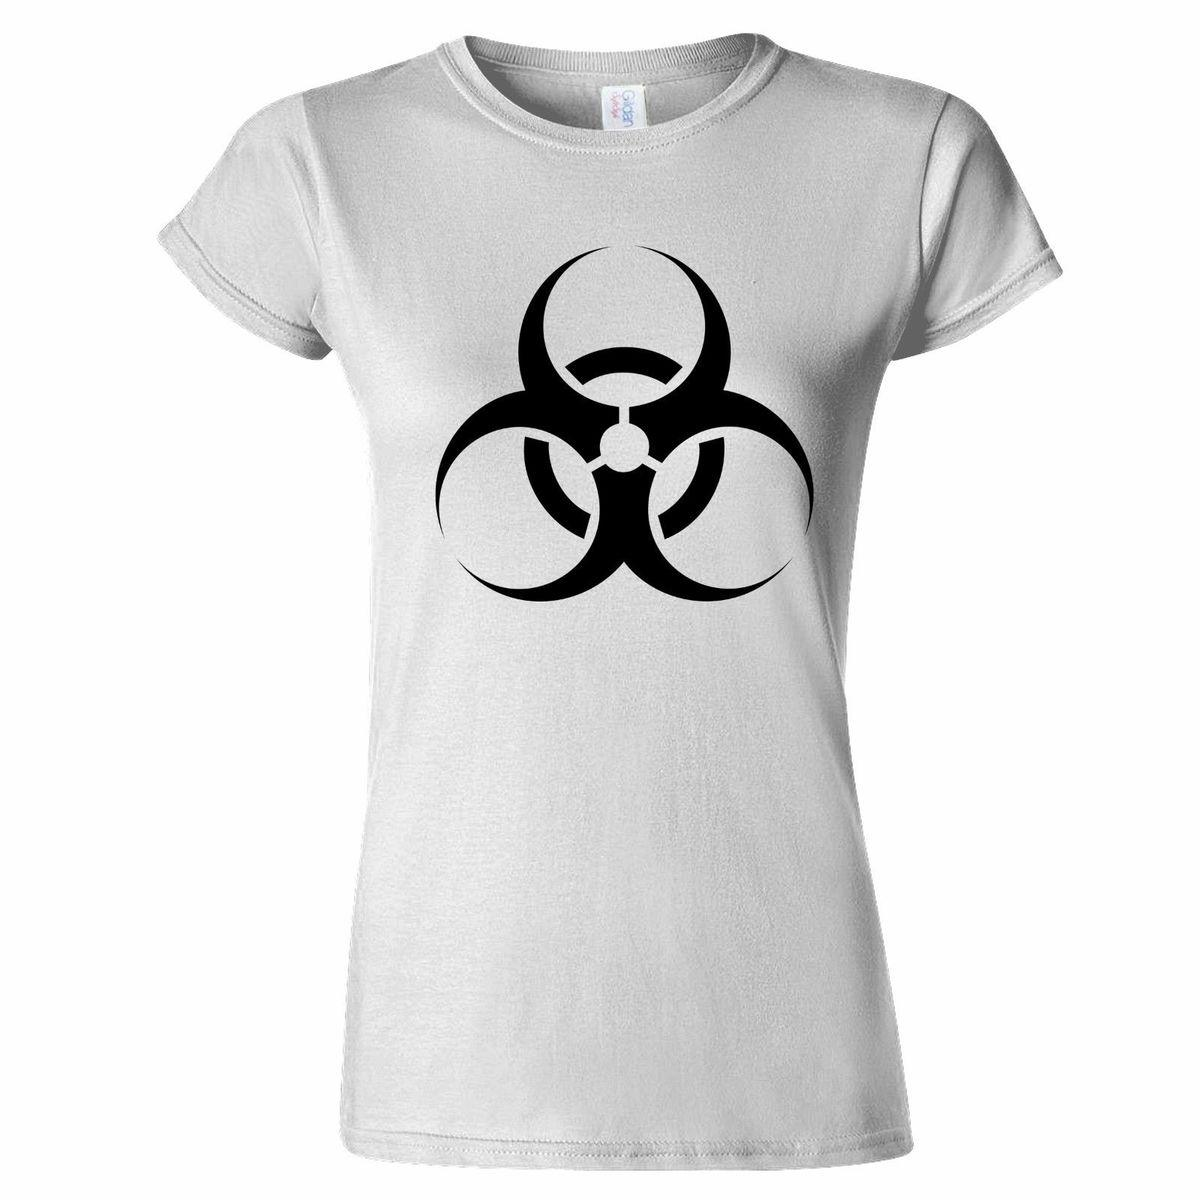 T Shirt Shop Short Women Biohazard Symbol Chemical Waste Toxic Waste